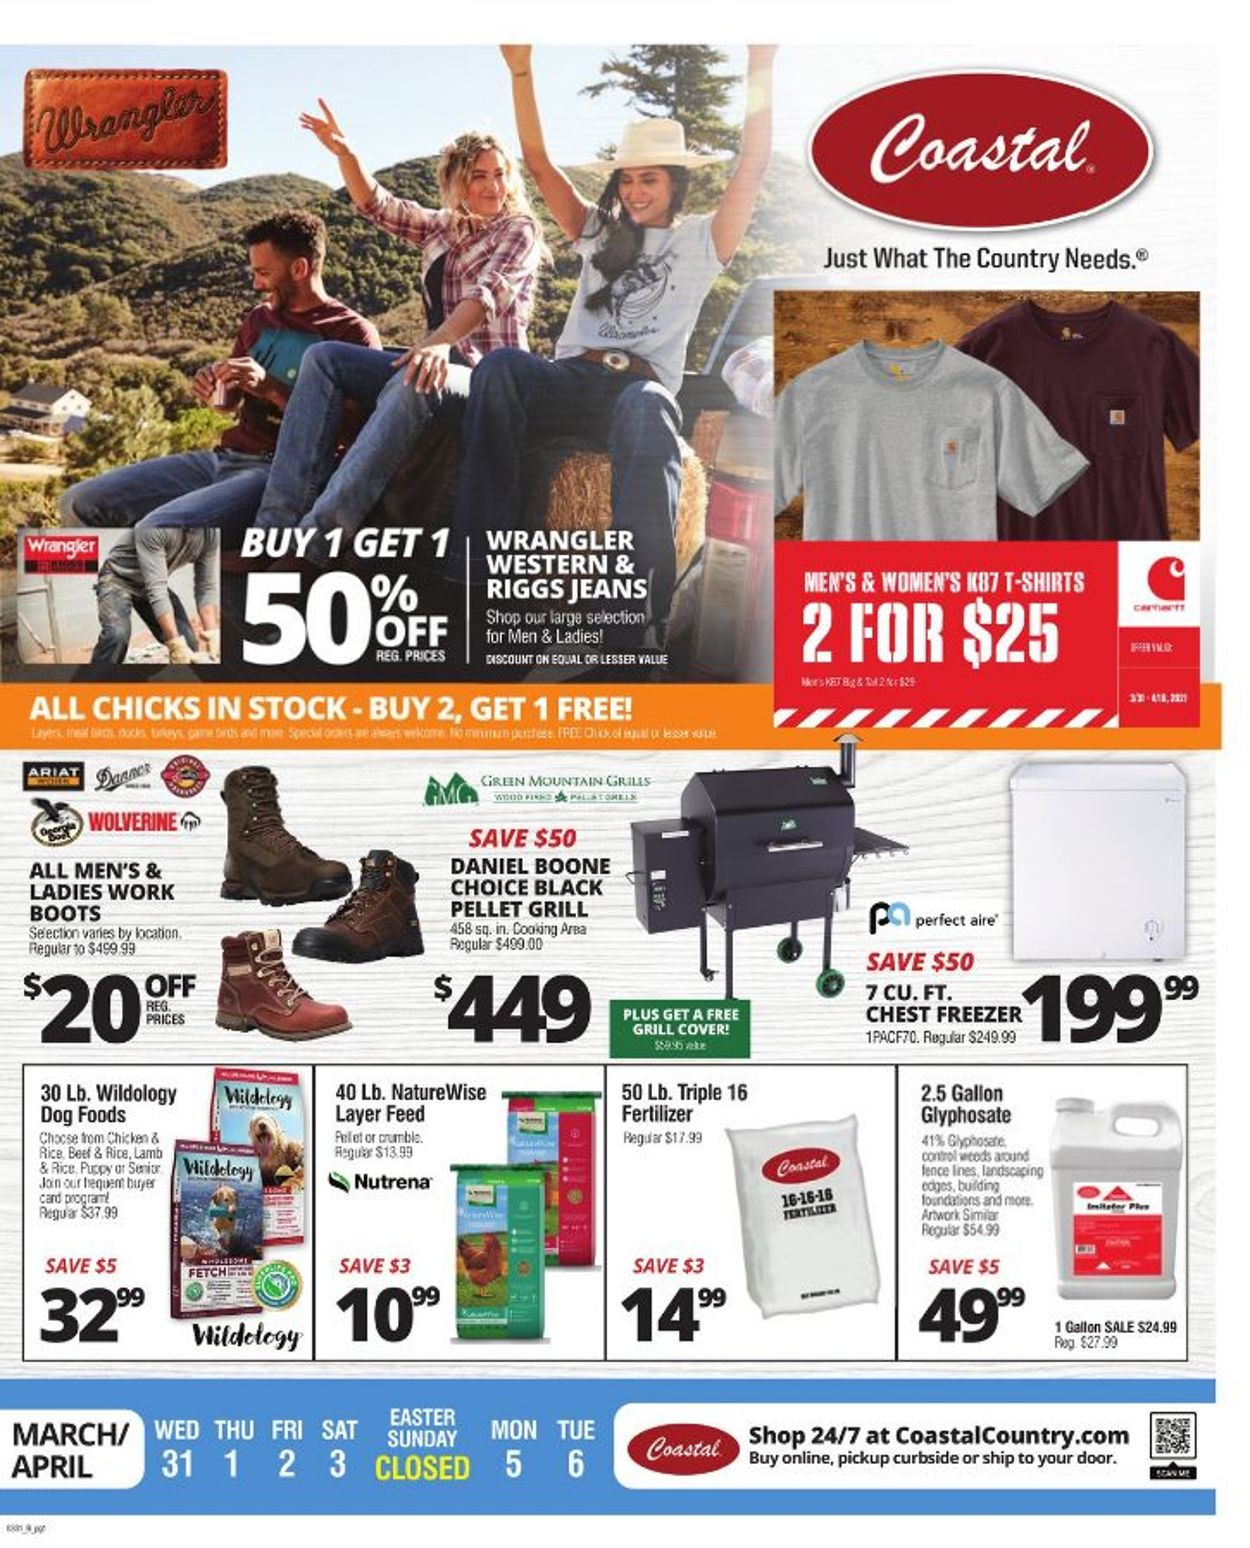 Catalogue Coastal Farm & Ranch - Easter 2021 Ad from 03/31/2021